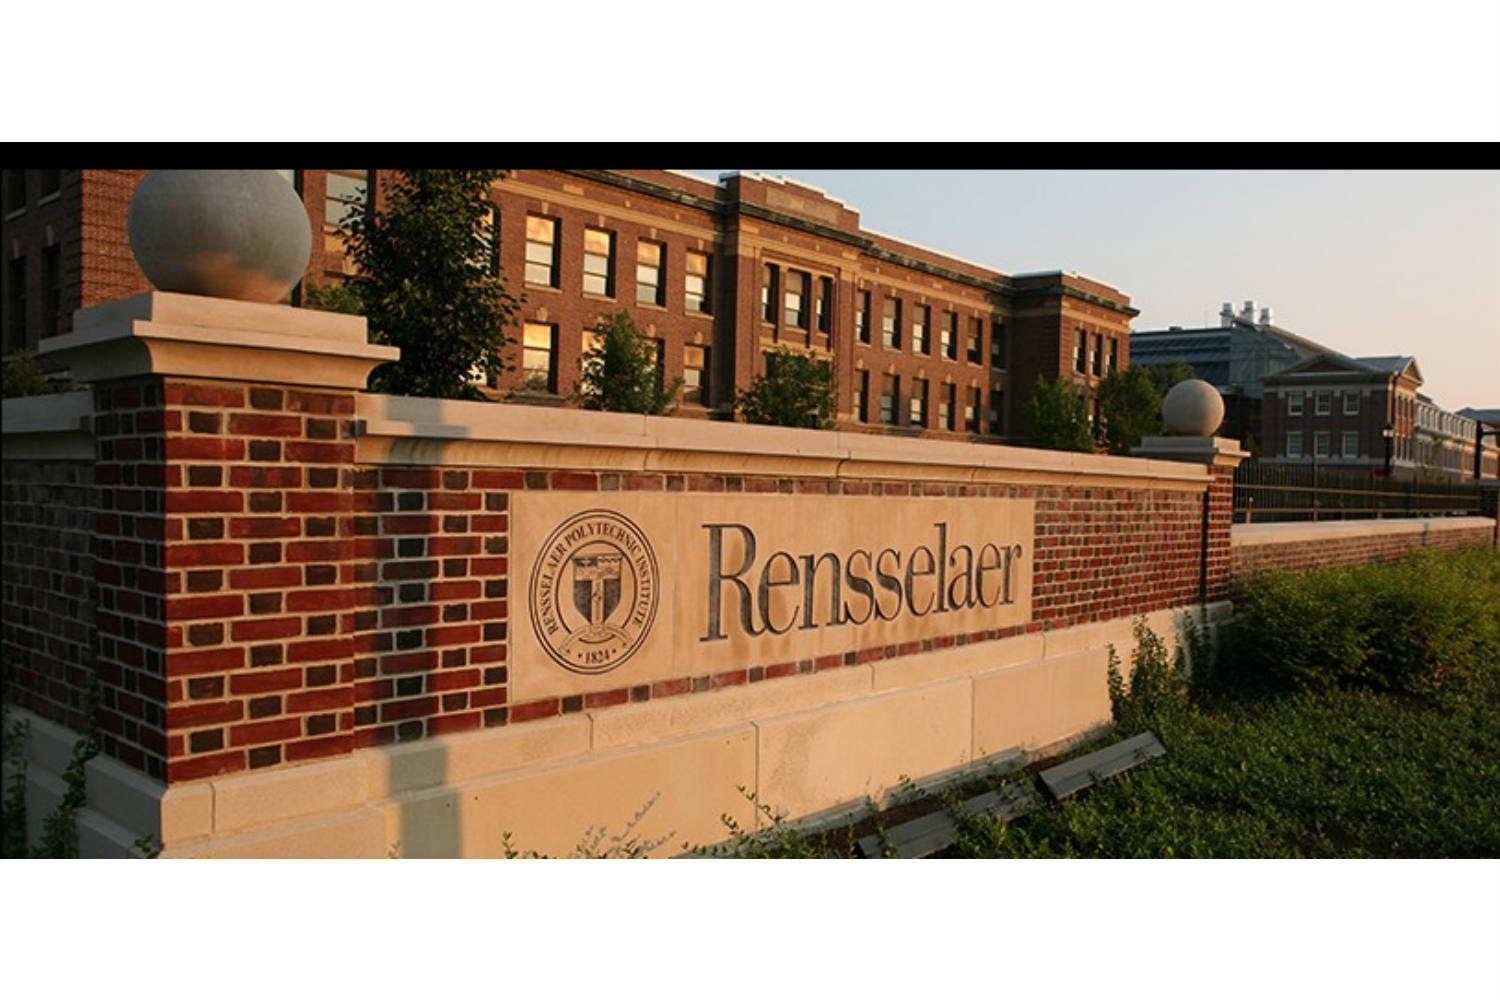 Rensselaer Polytechnic Institute (RPI) brand new state-of-the-art audio production facilities, designed by WSDG